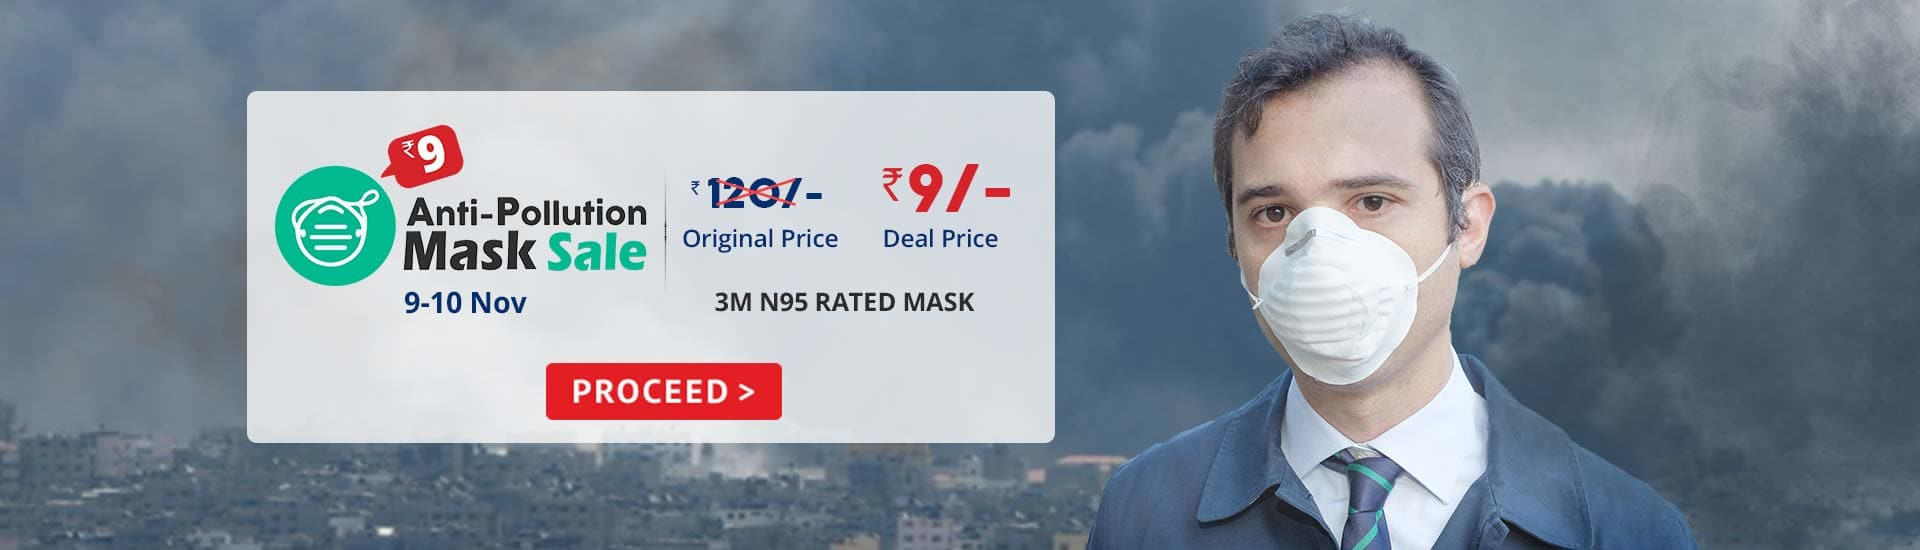 Anti-Pollution Mask Sale Delhi